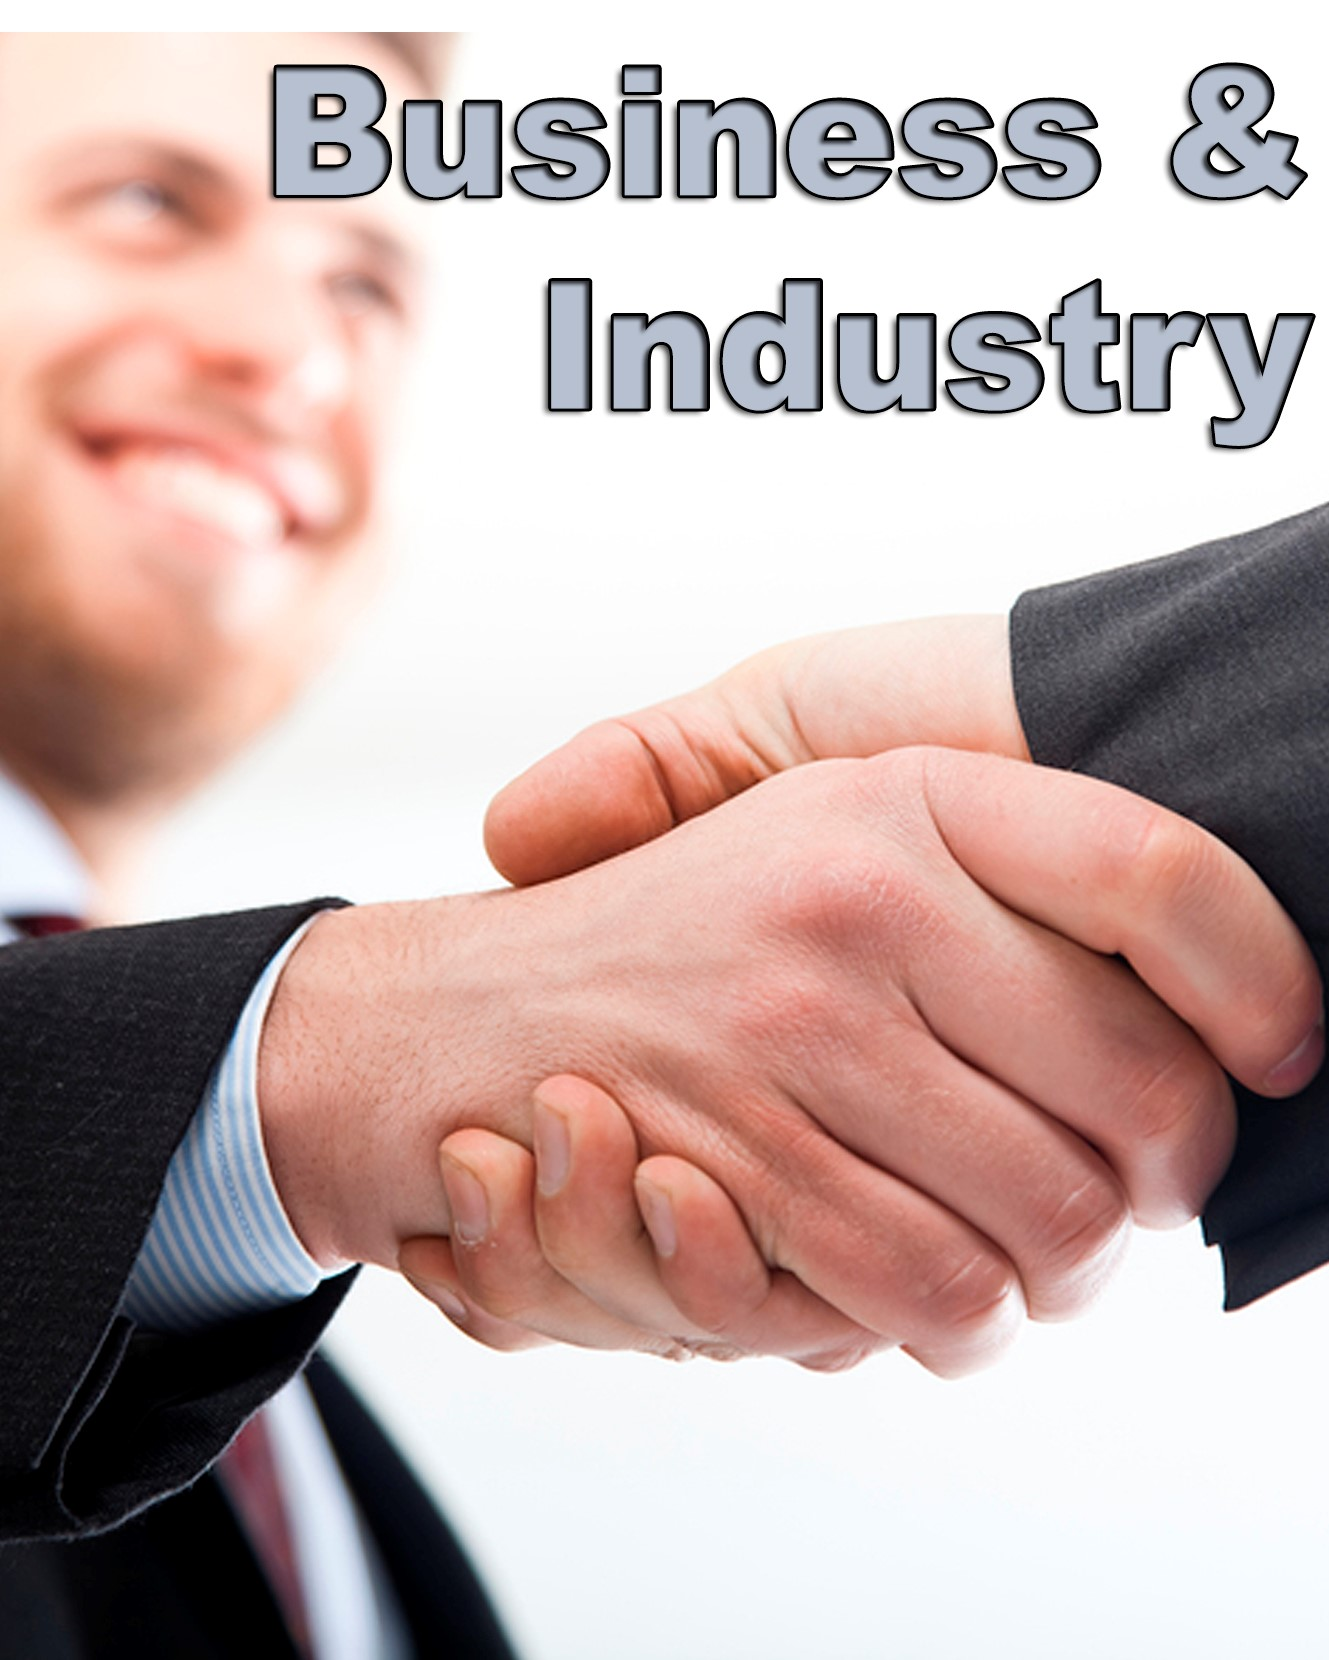 Business and Industry Sponsors